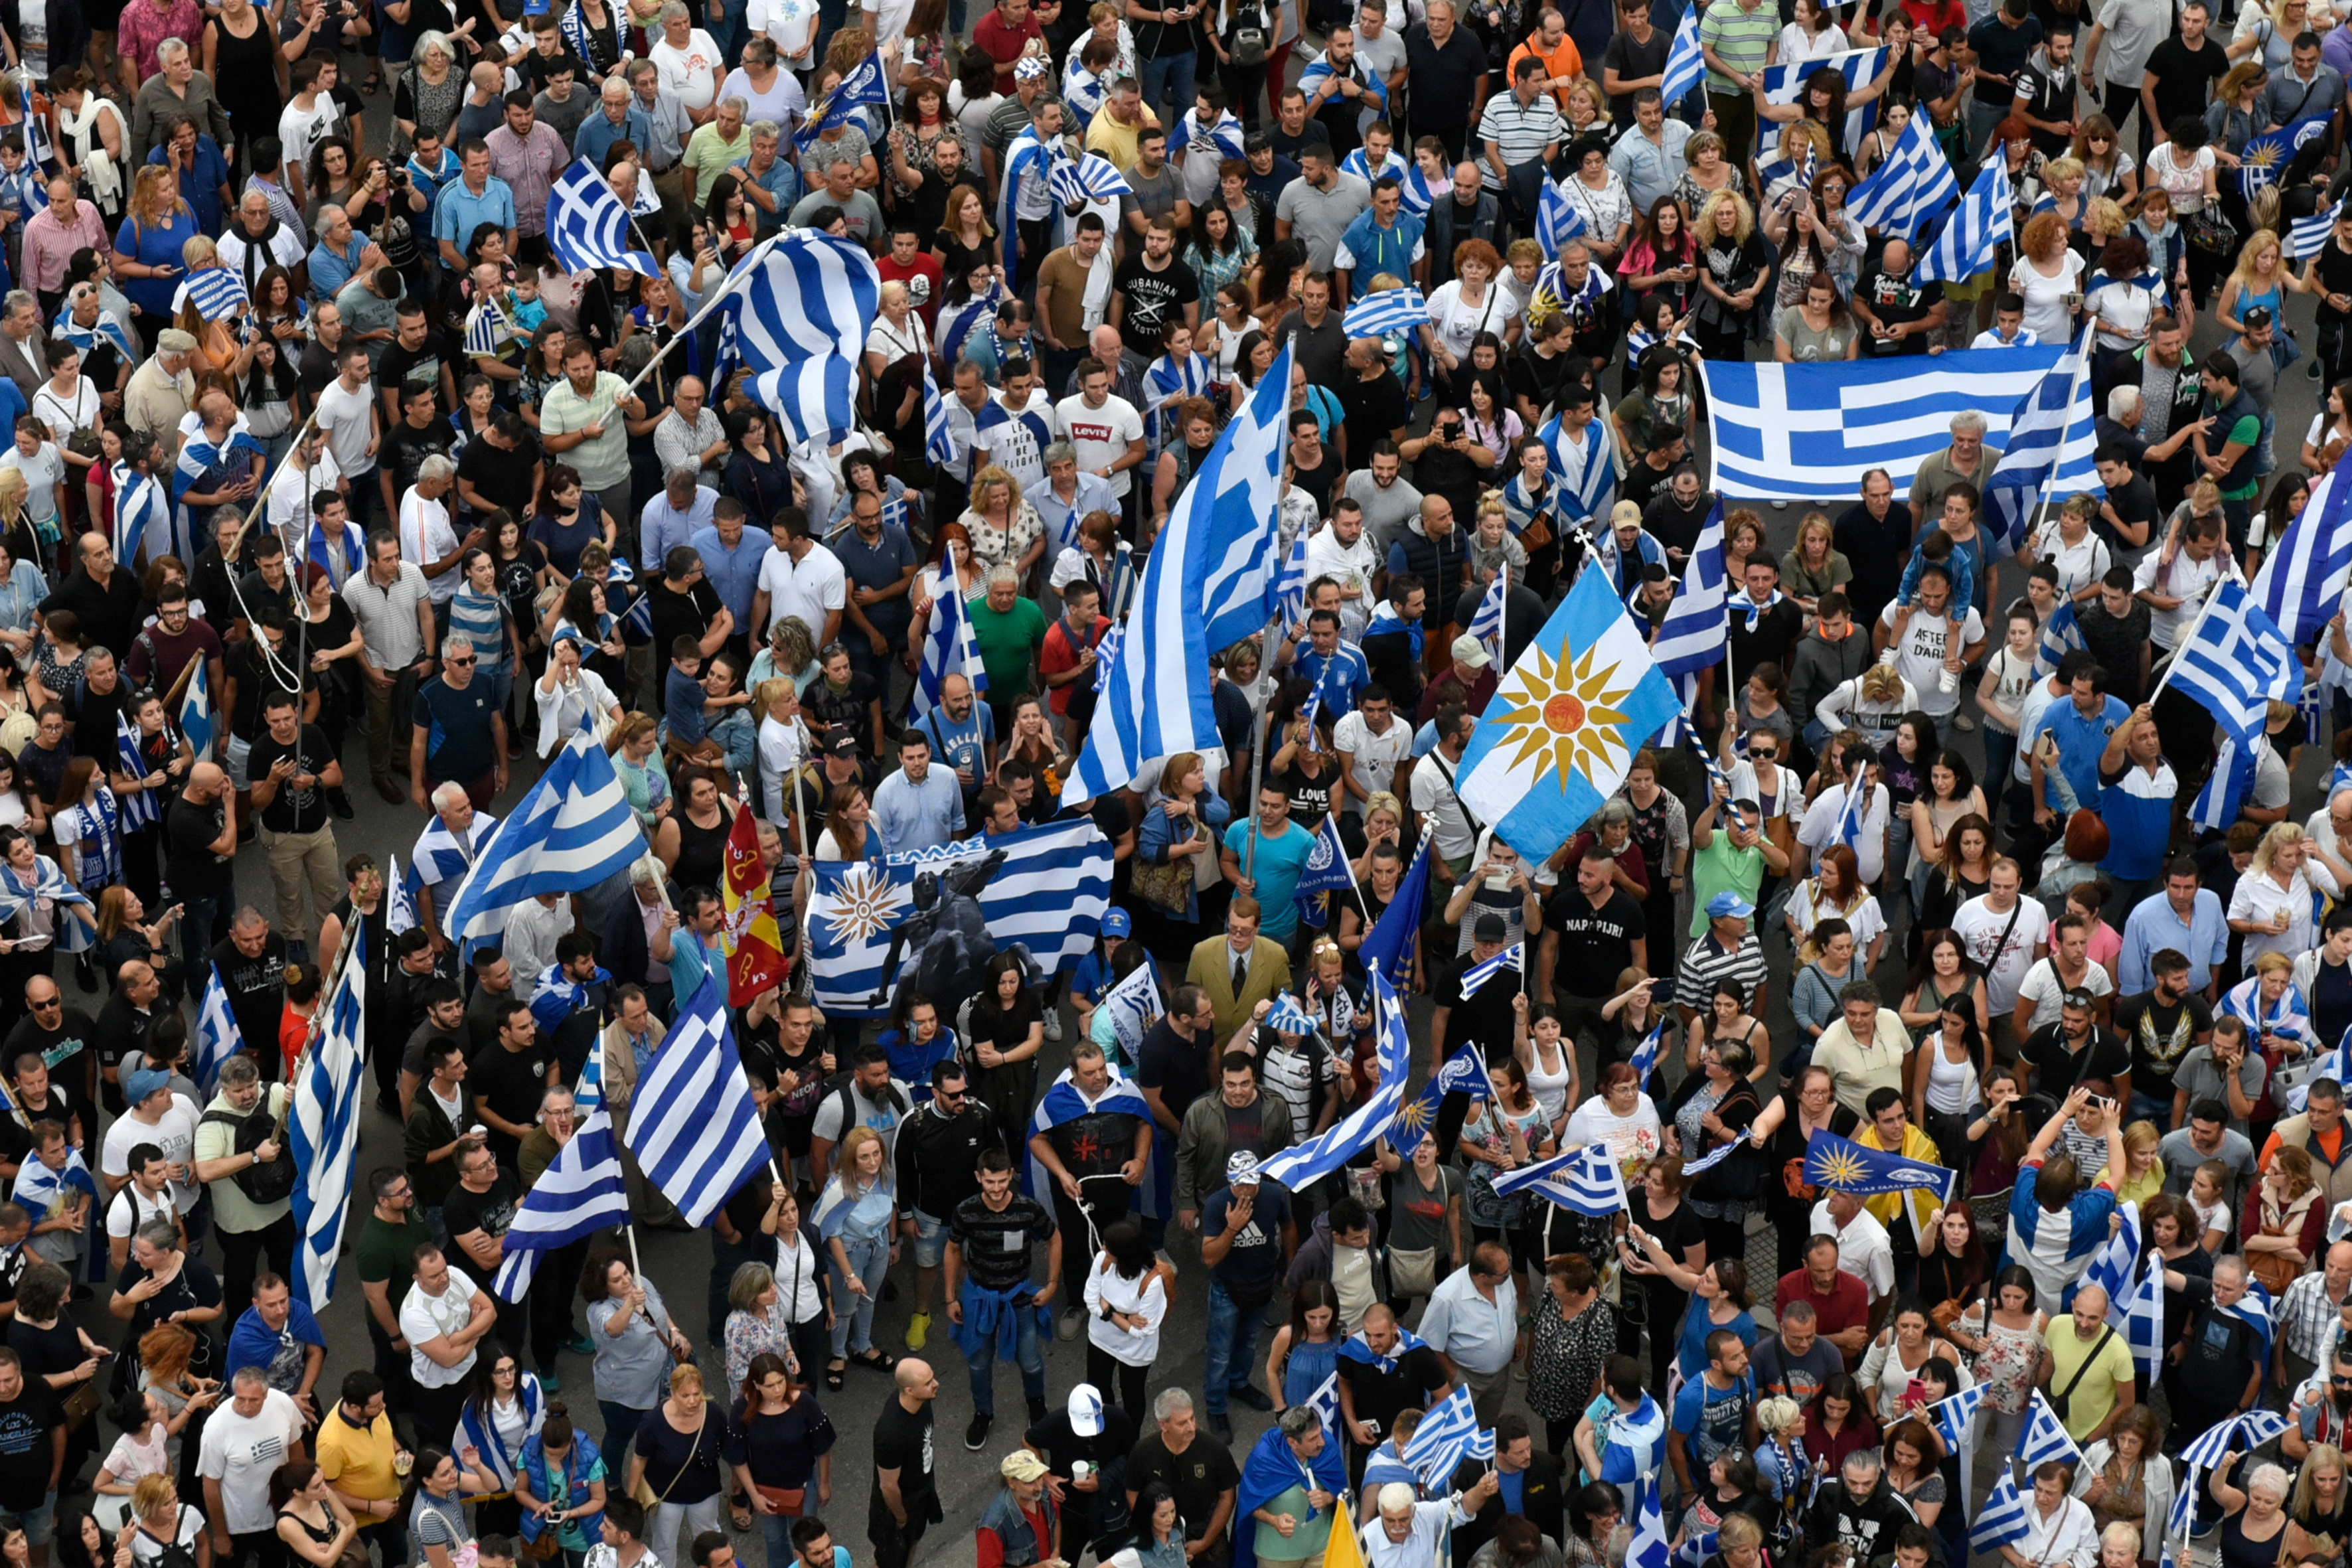 Protesters take part in a demonstration against the agreement reached by Greece and Macedonia to resolve a dispute over the former Yugoslav republic's name, in Thessaloniki, Greece, June 24, 2018.